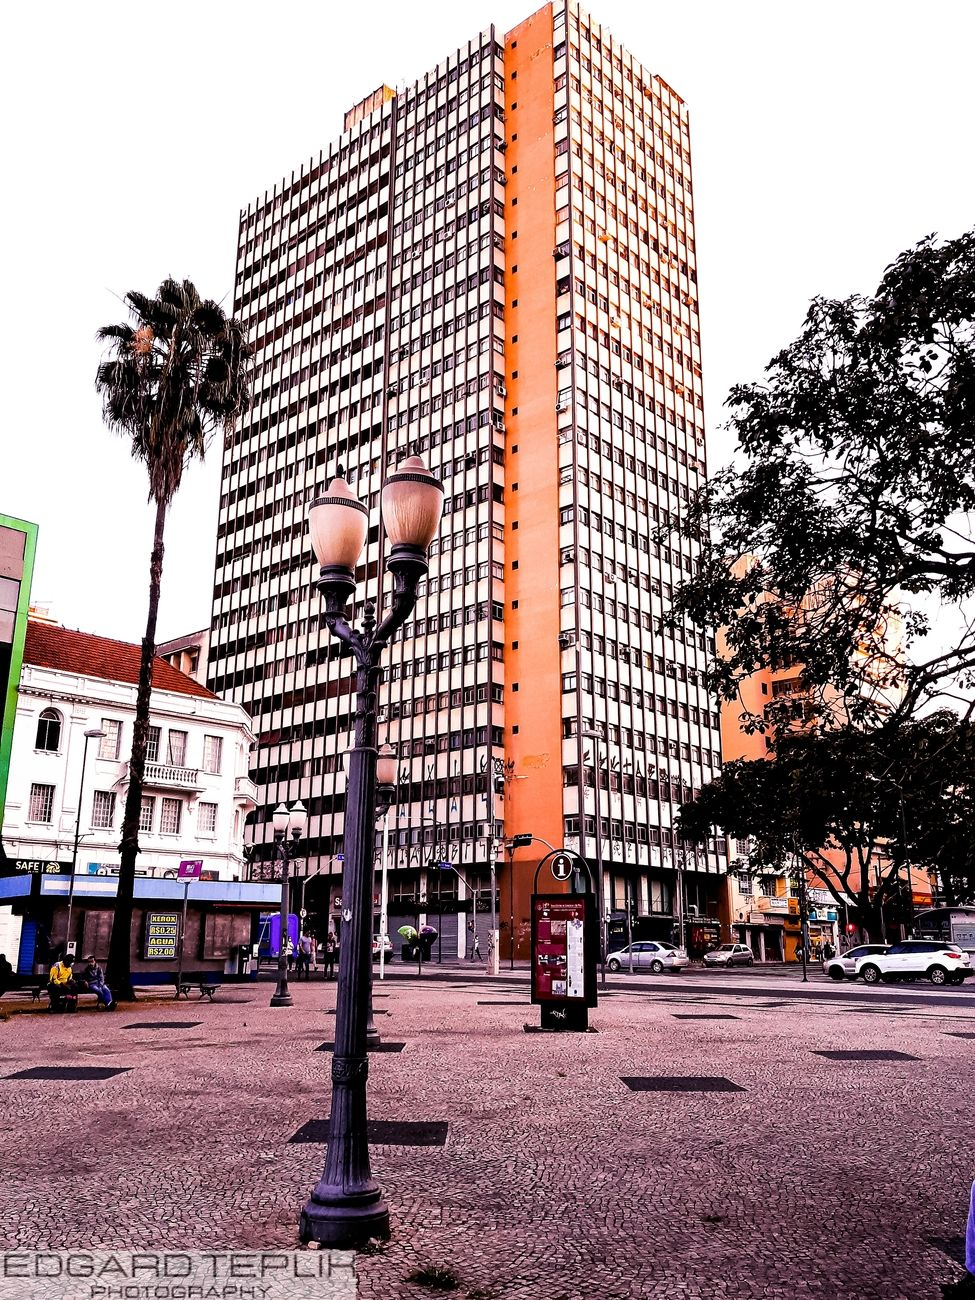 The highlight is this old lamppost, with this beautiful old building located at Rua Francisco Glicério, in the center of Campinas City